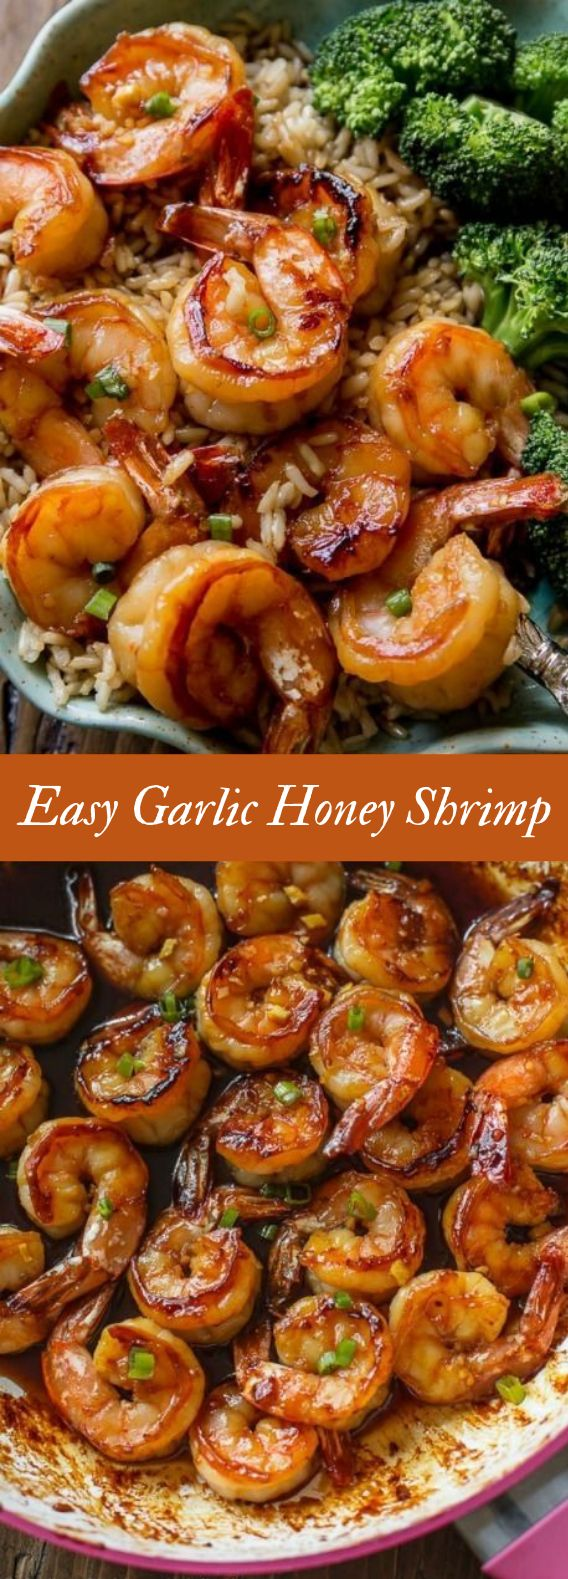 Fast & Wholesome Dinner: 20 Minute Honey Garlic Shrimp #Recipe #Simple Simple, well being…